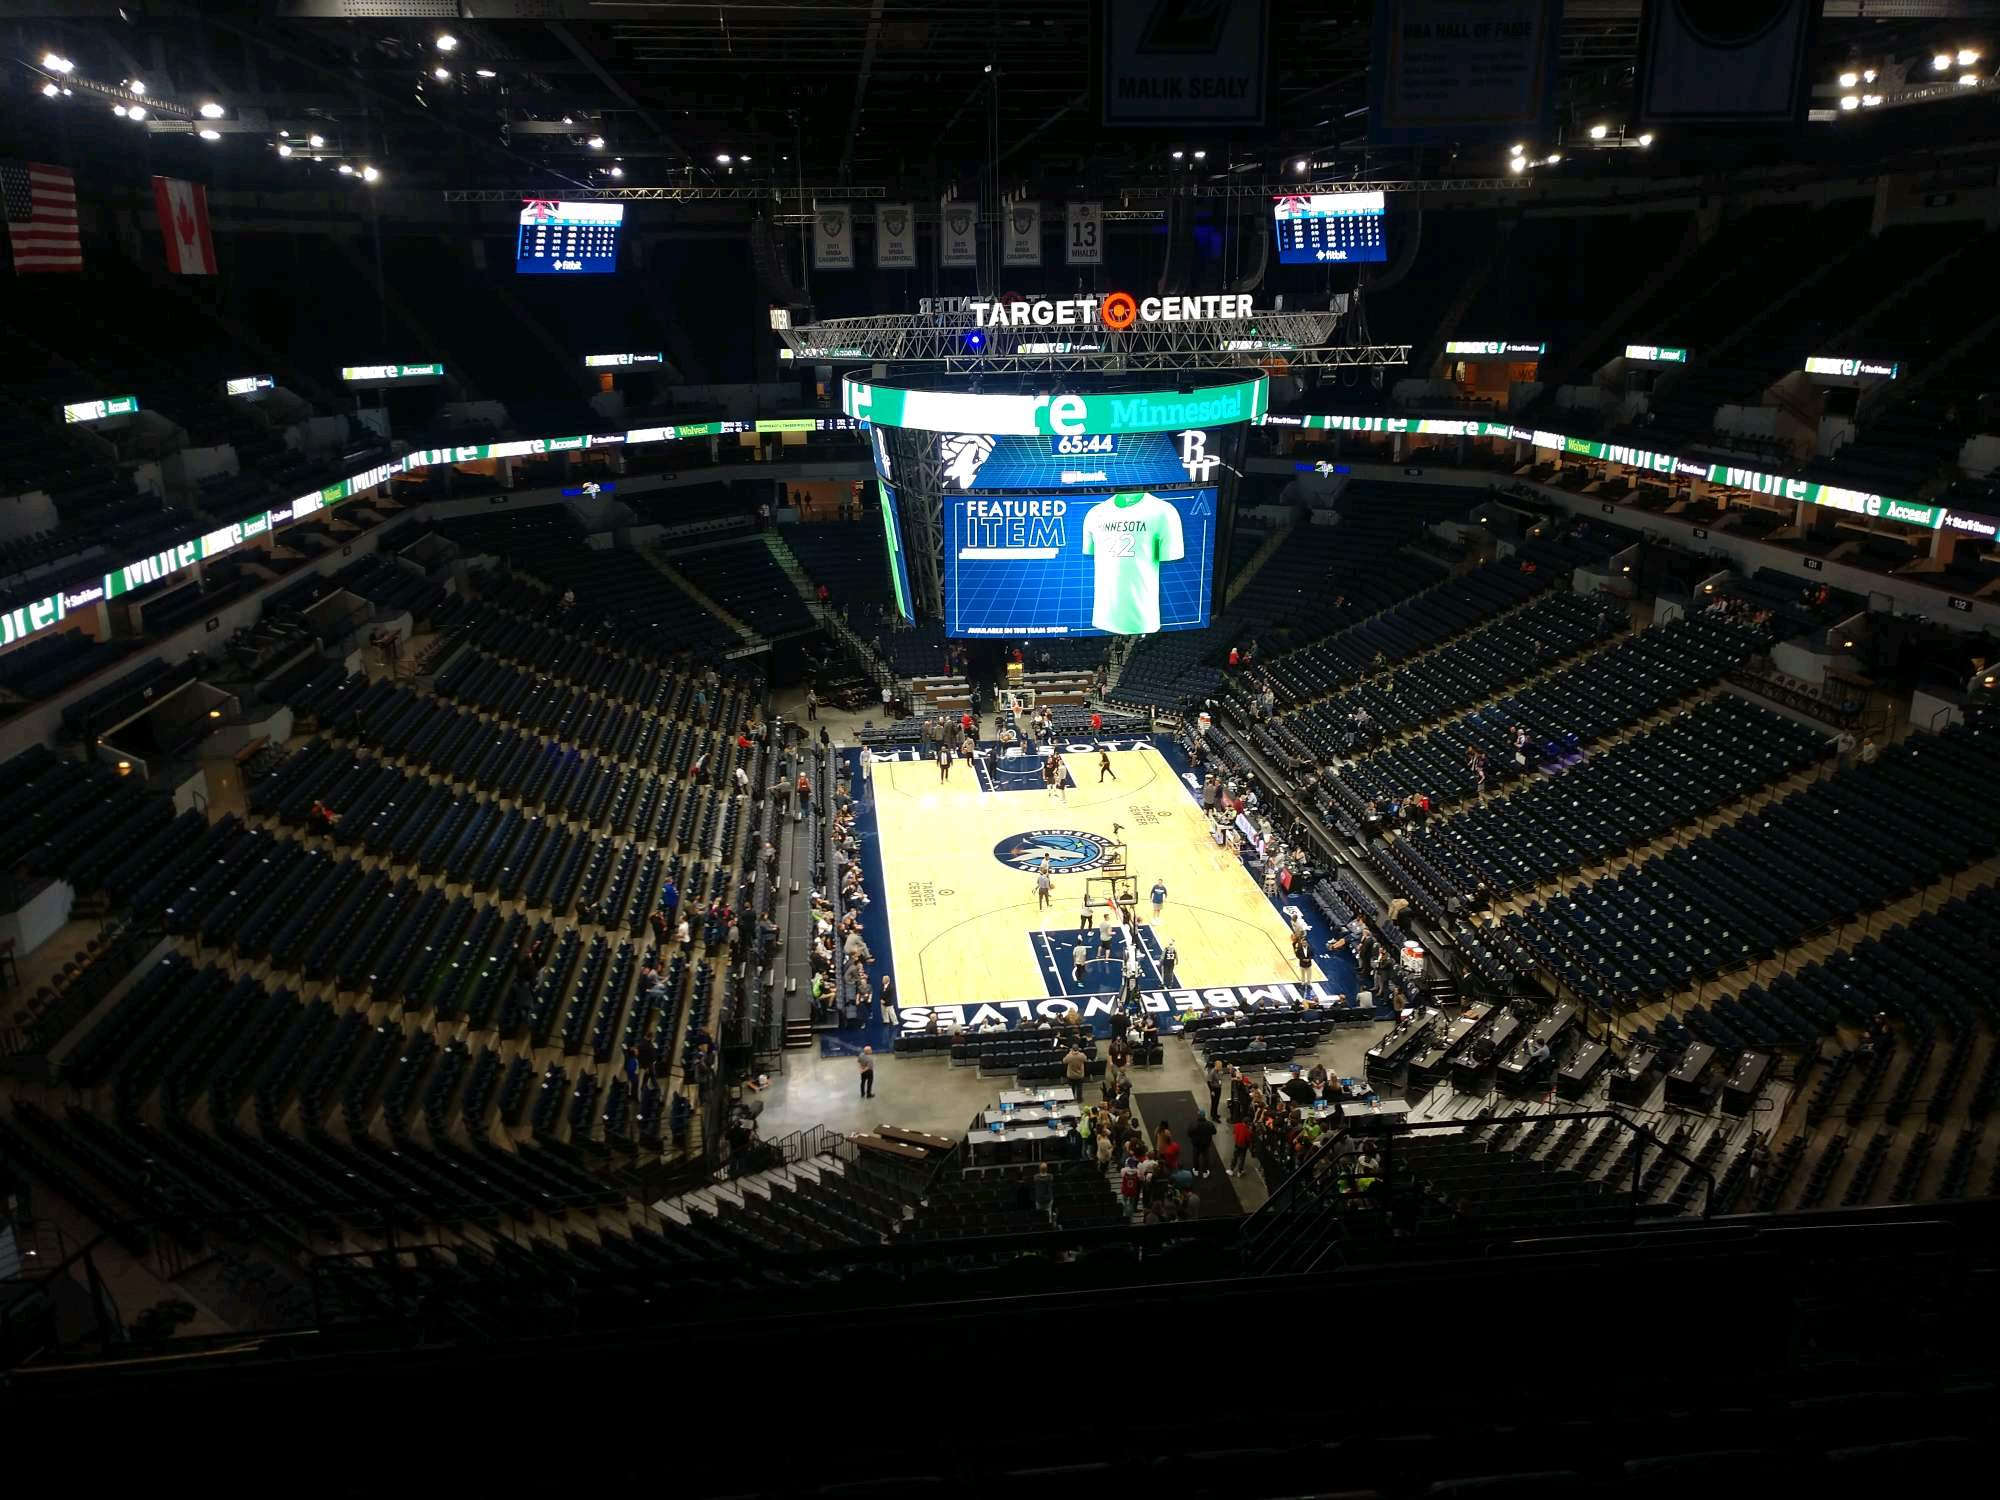 Target Center Section 202 Row Q Seat 8